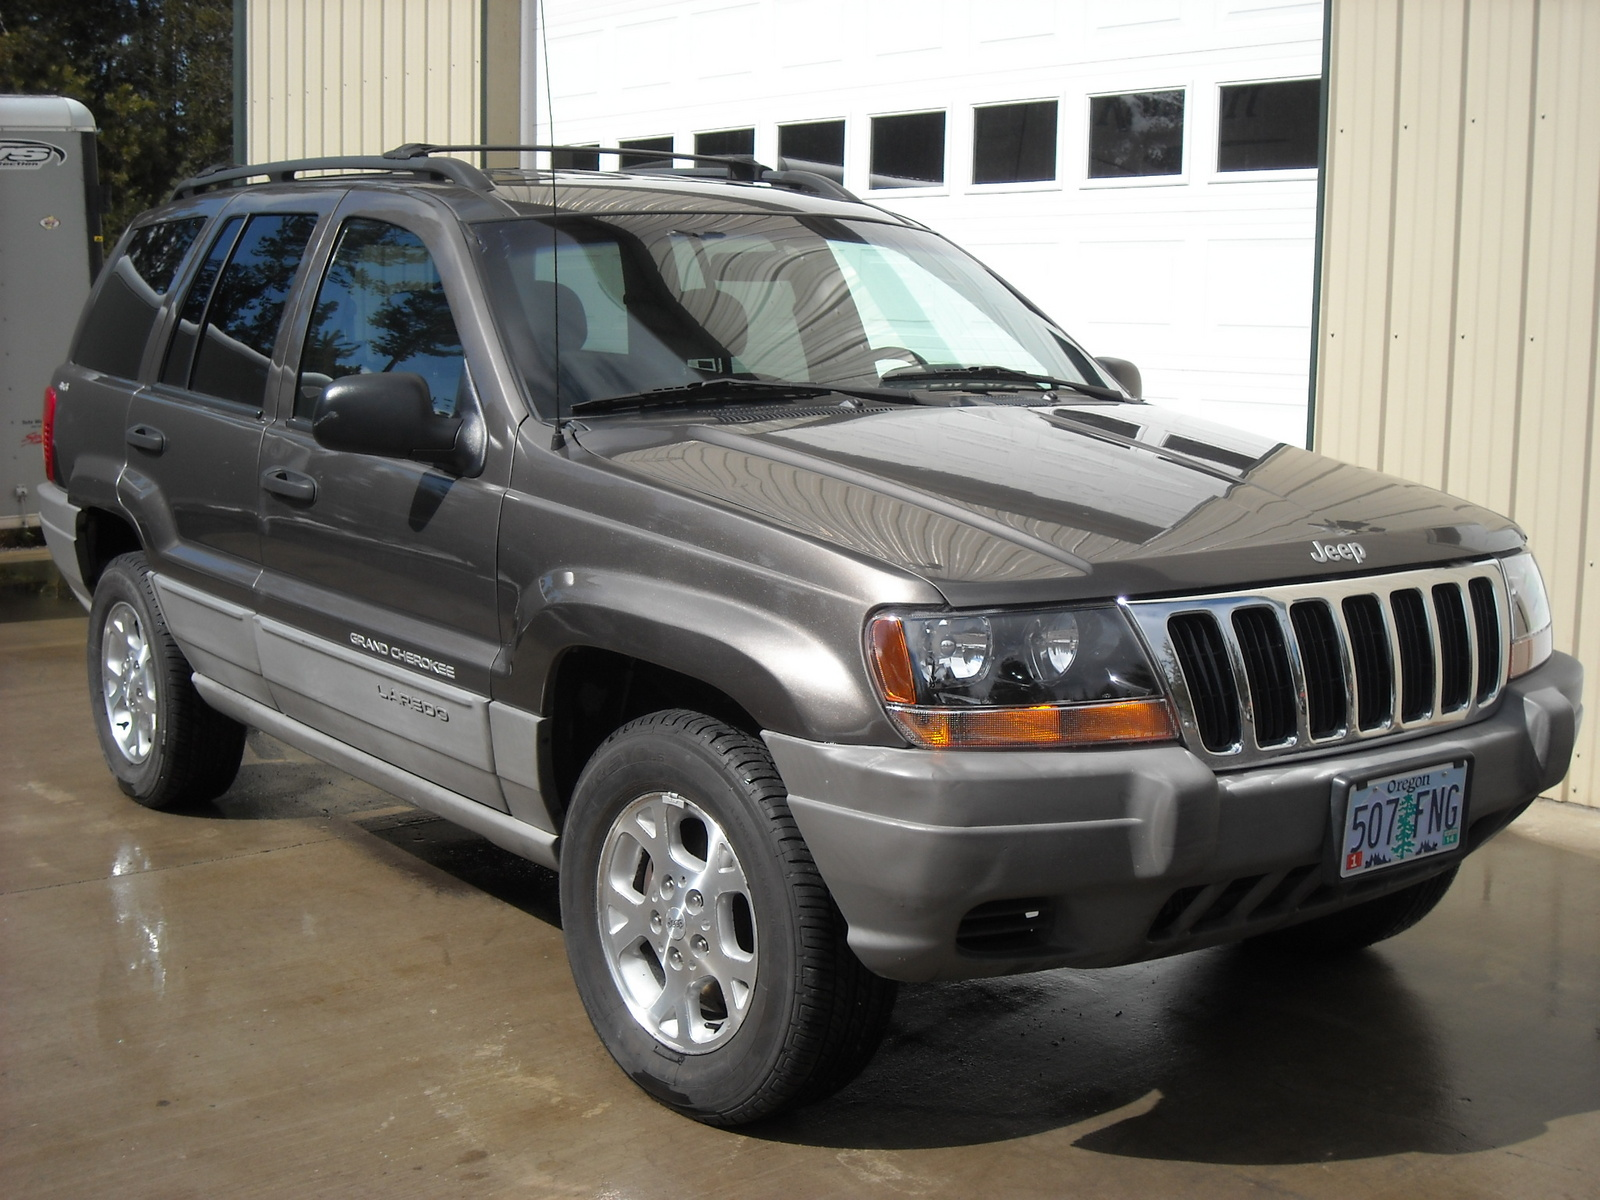 1999 Jeep Grand Cherokee - Pictures